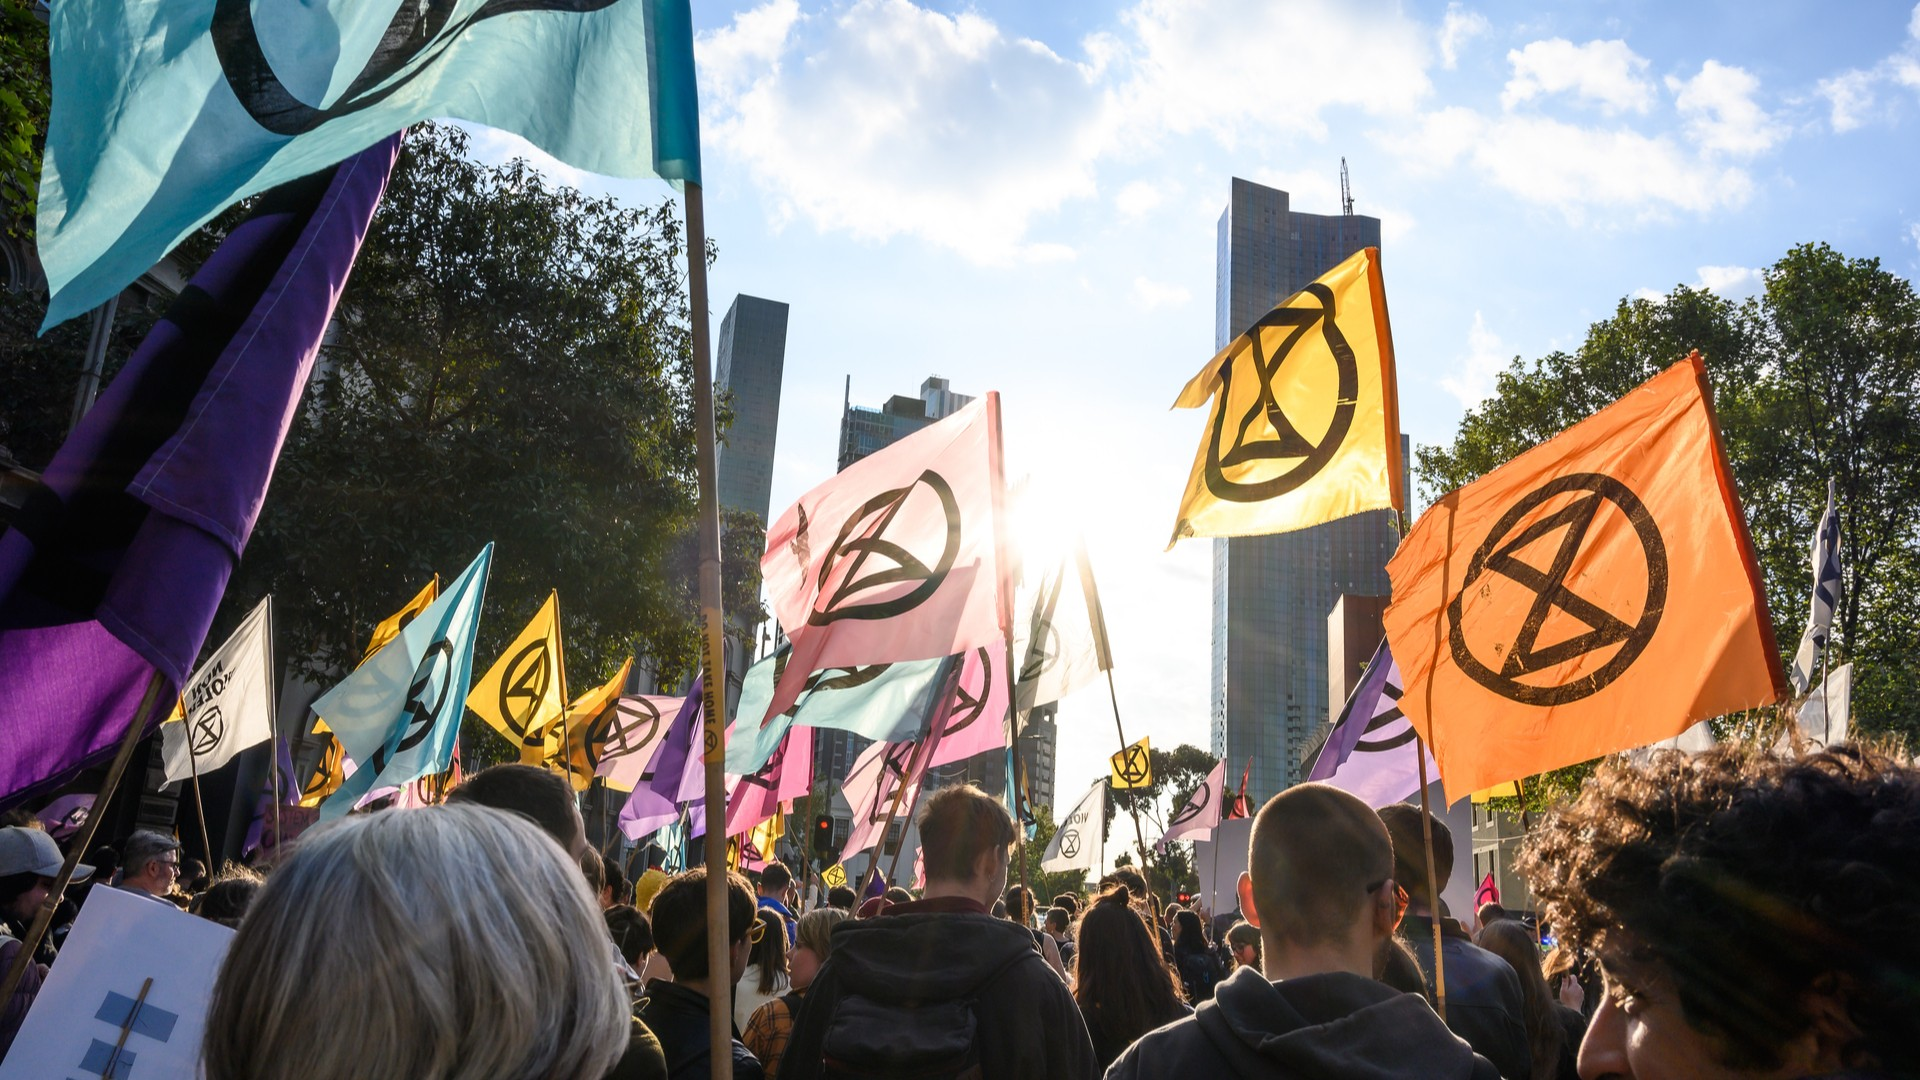 Cosa chiedono quelli di Extinction Rebellion